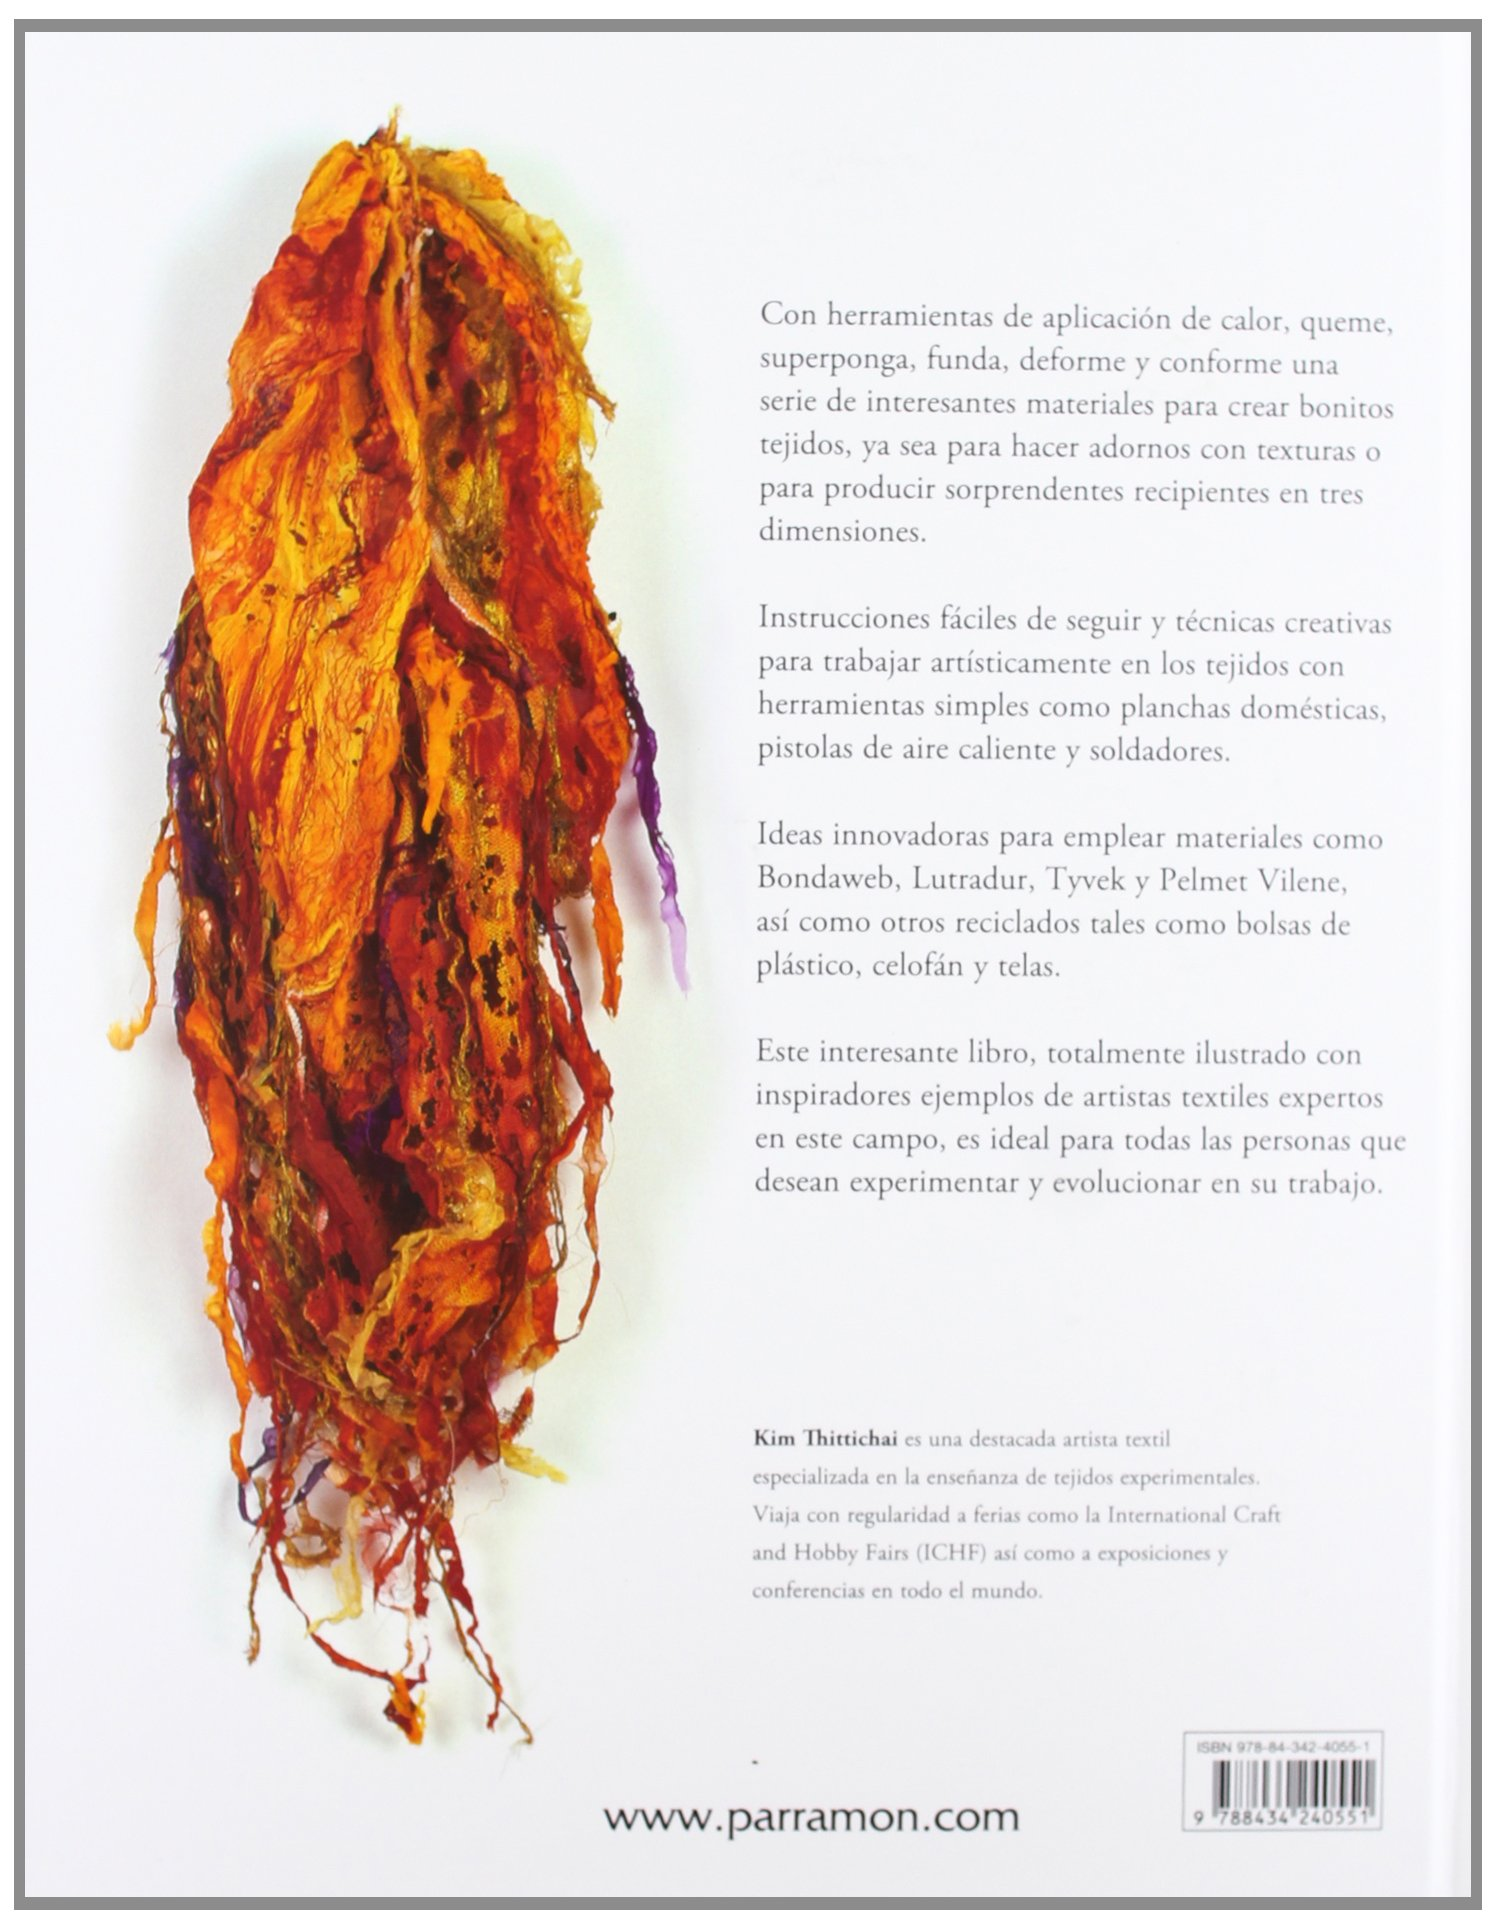 Arte textil calor (Spanish Edition): Kim Thittichai: 9788434240551: Amazon.com: Books